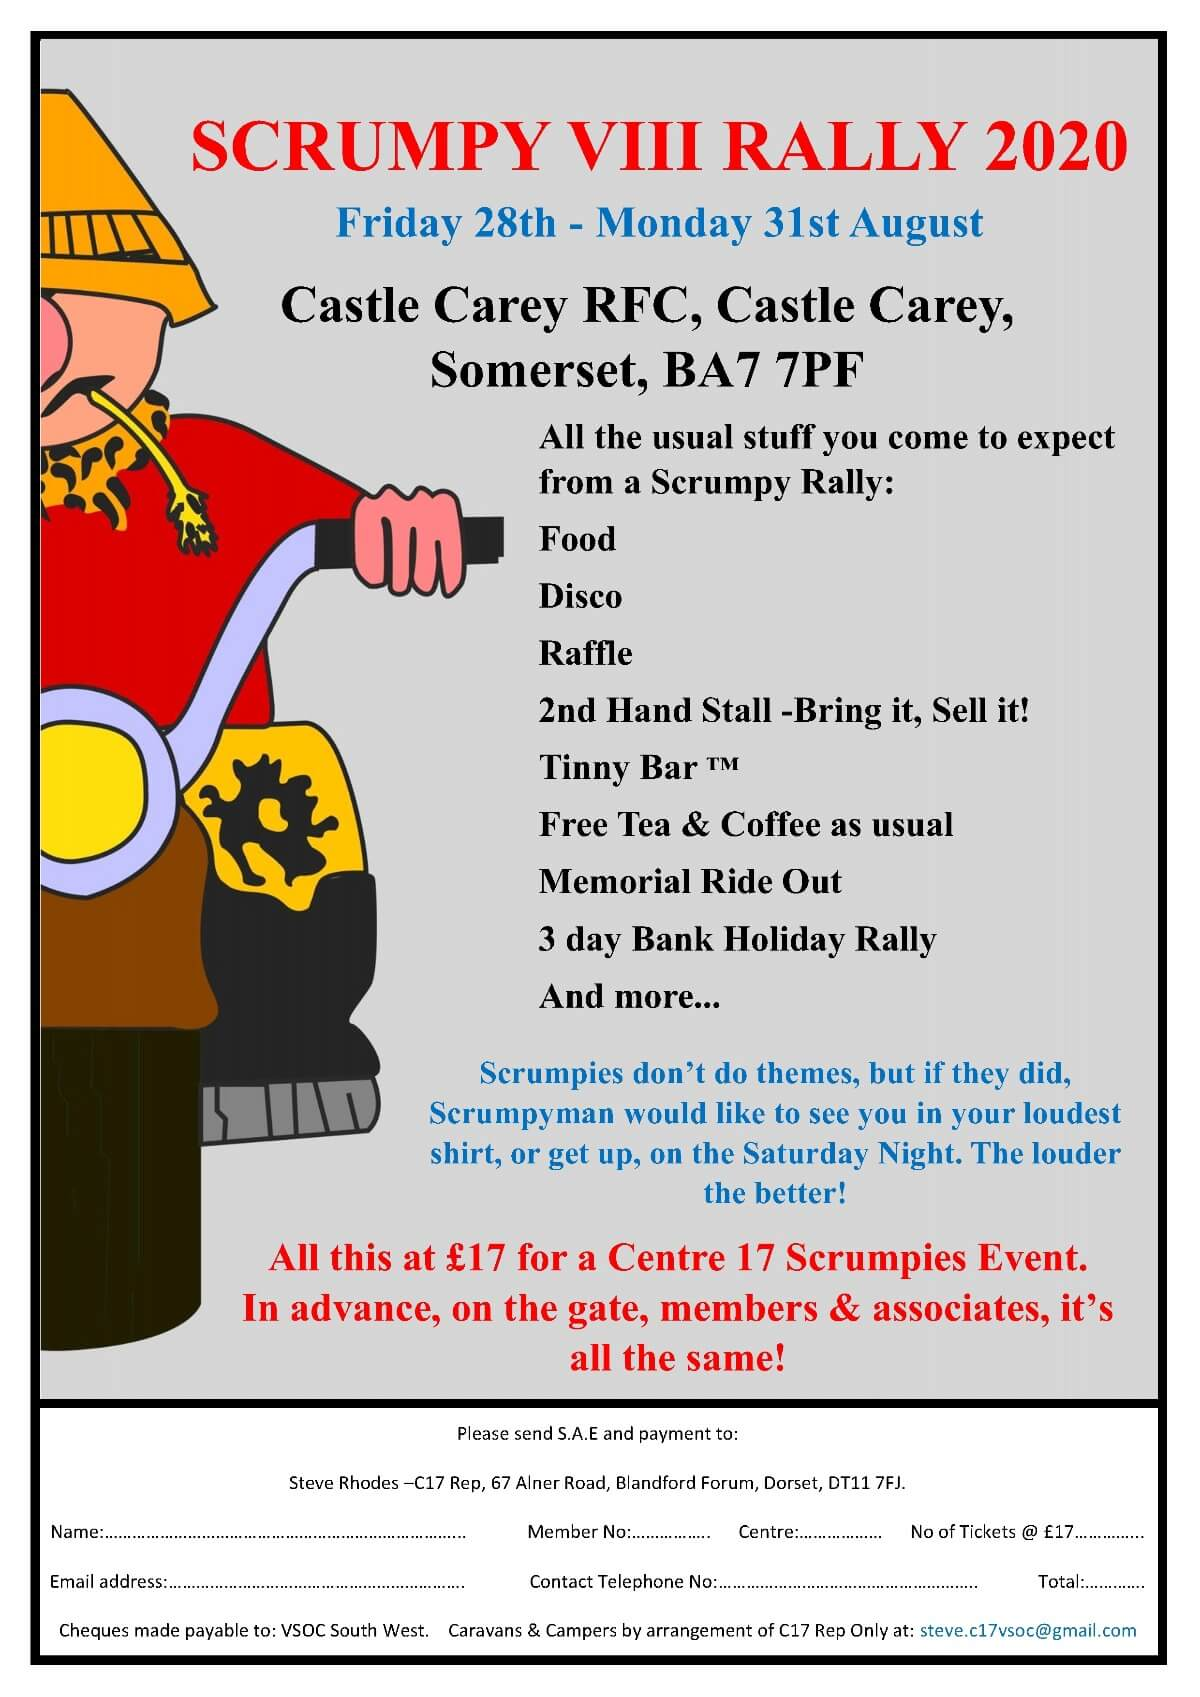 CANCELLED VSOC CENTRE 17 (SCRUMPIES) RALLY @ Castle Cary Rugby Football Club